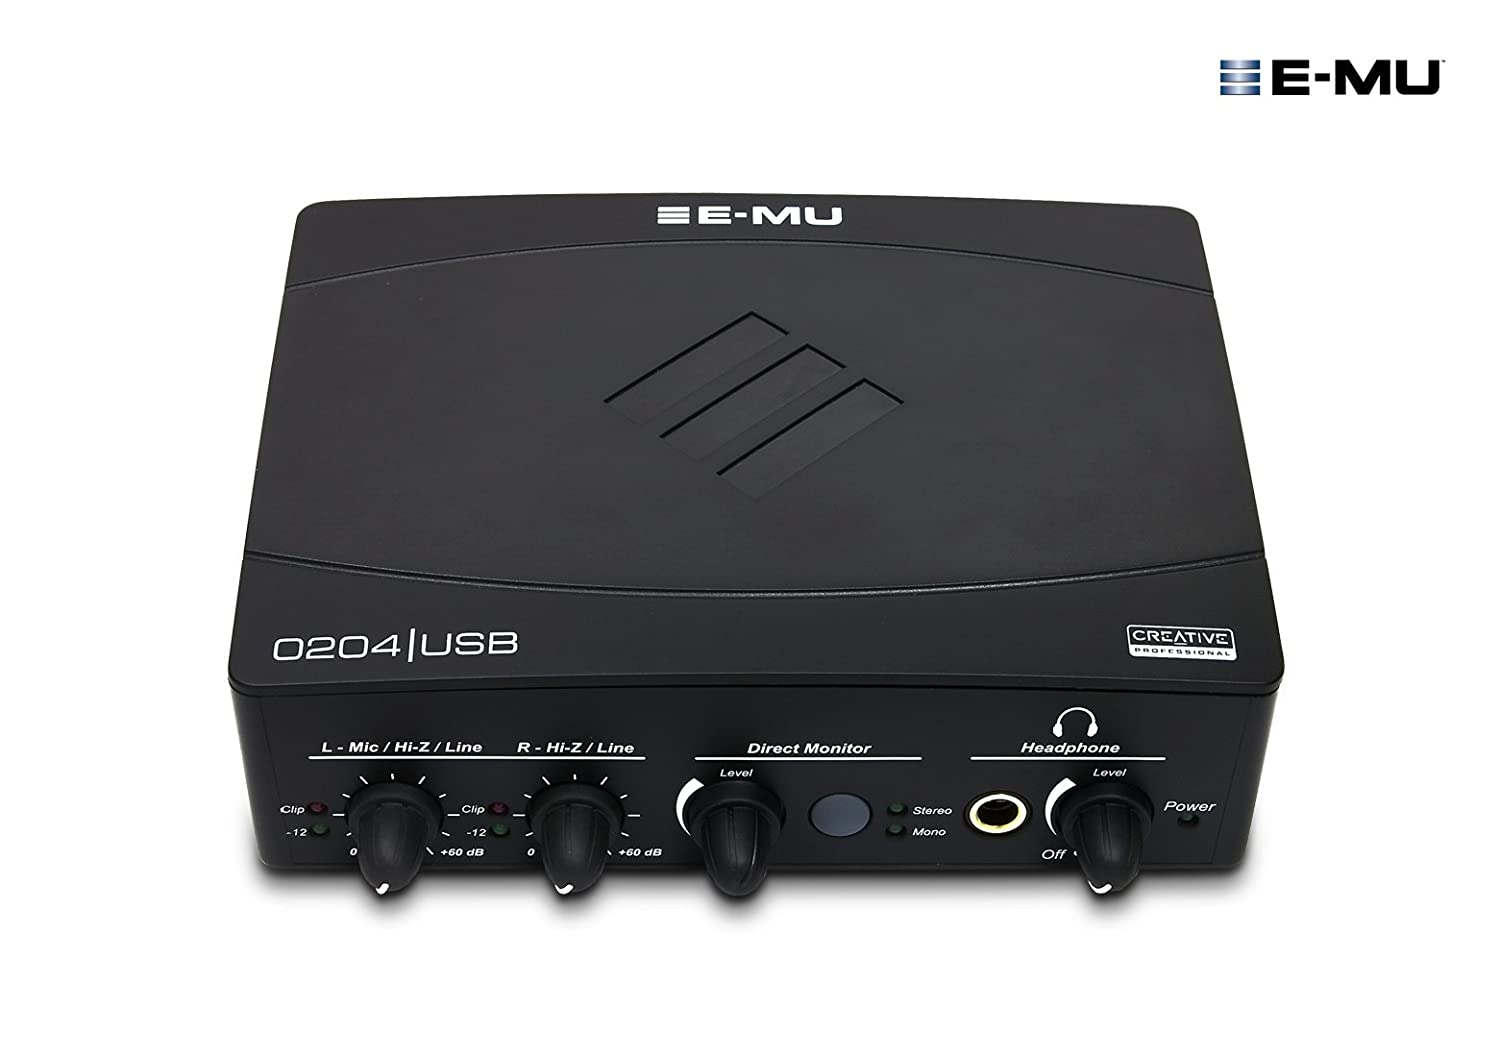 E-MU 0204 USB Audio Interface Windows 8 X64